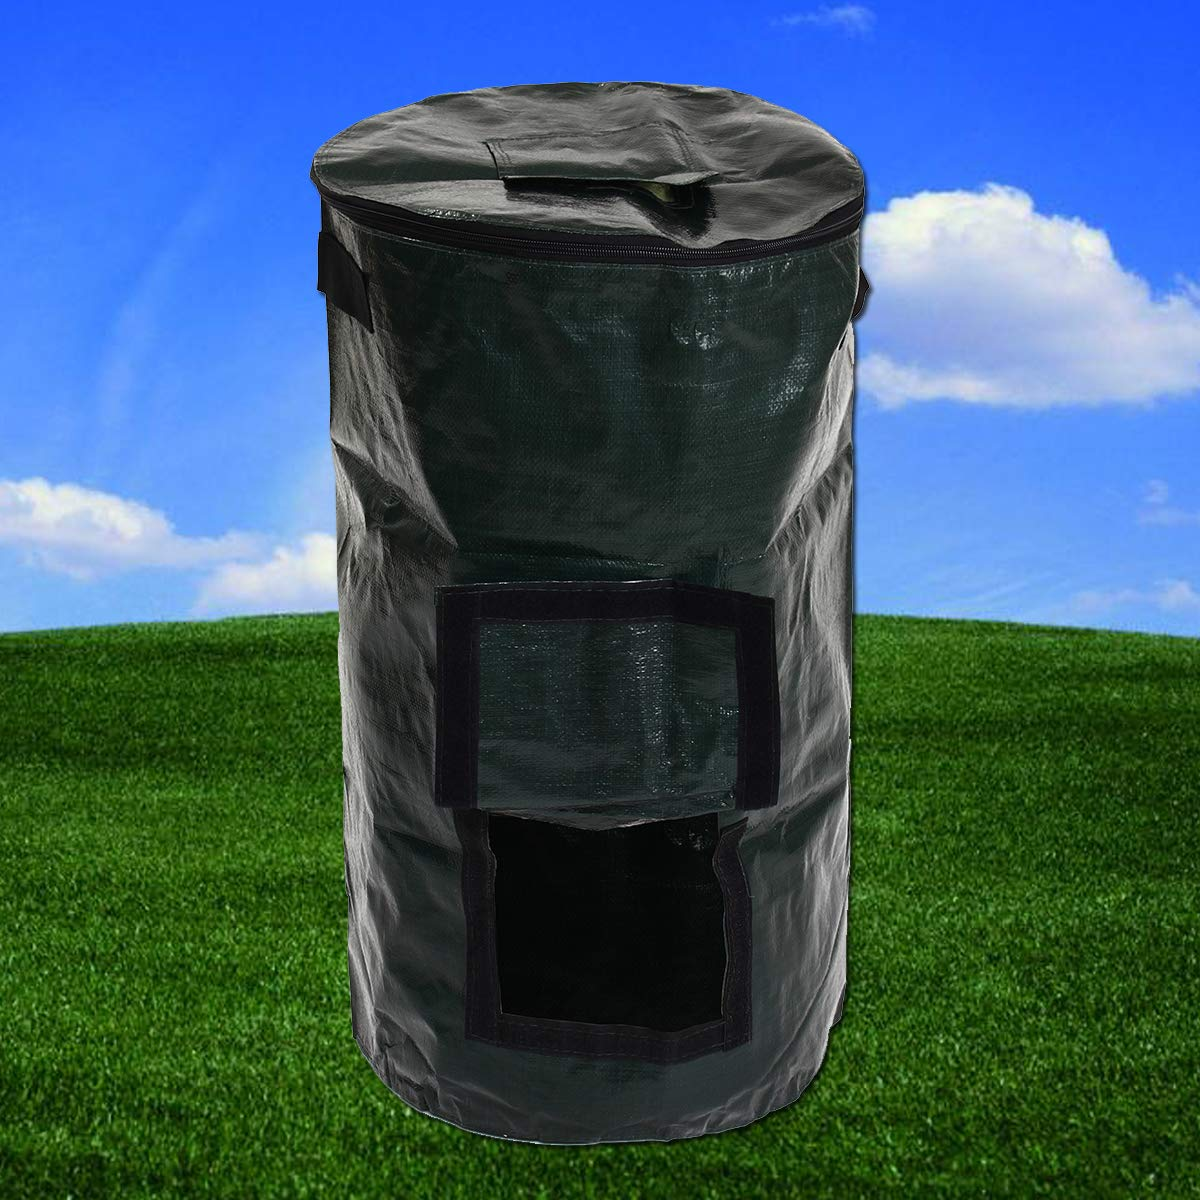 Hitommy 60L Organic Composter Waste Converter Waste Bins Eco Friendly Compost Storage Garden